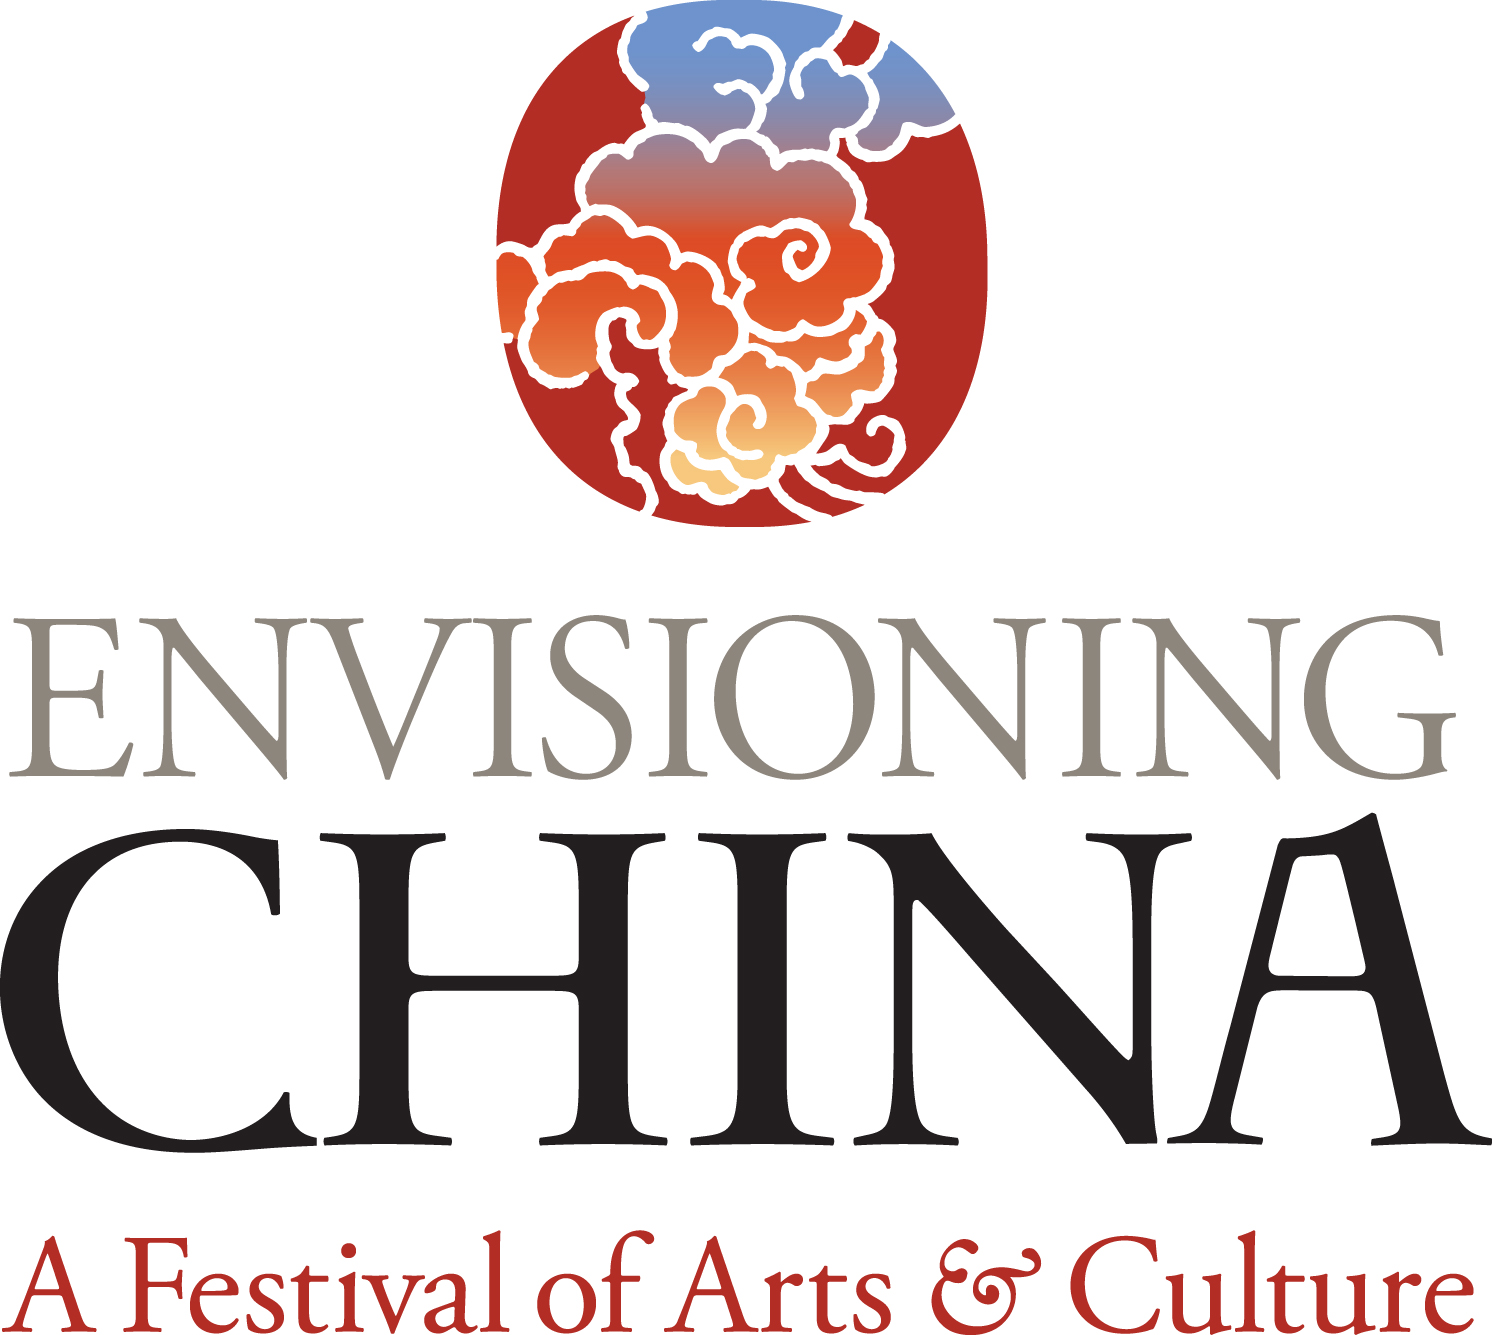 Envisioning China: A Festival of Arts & Culture